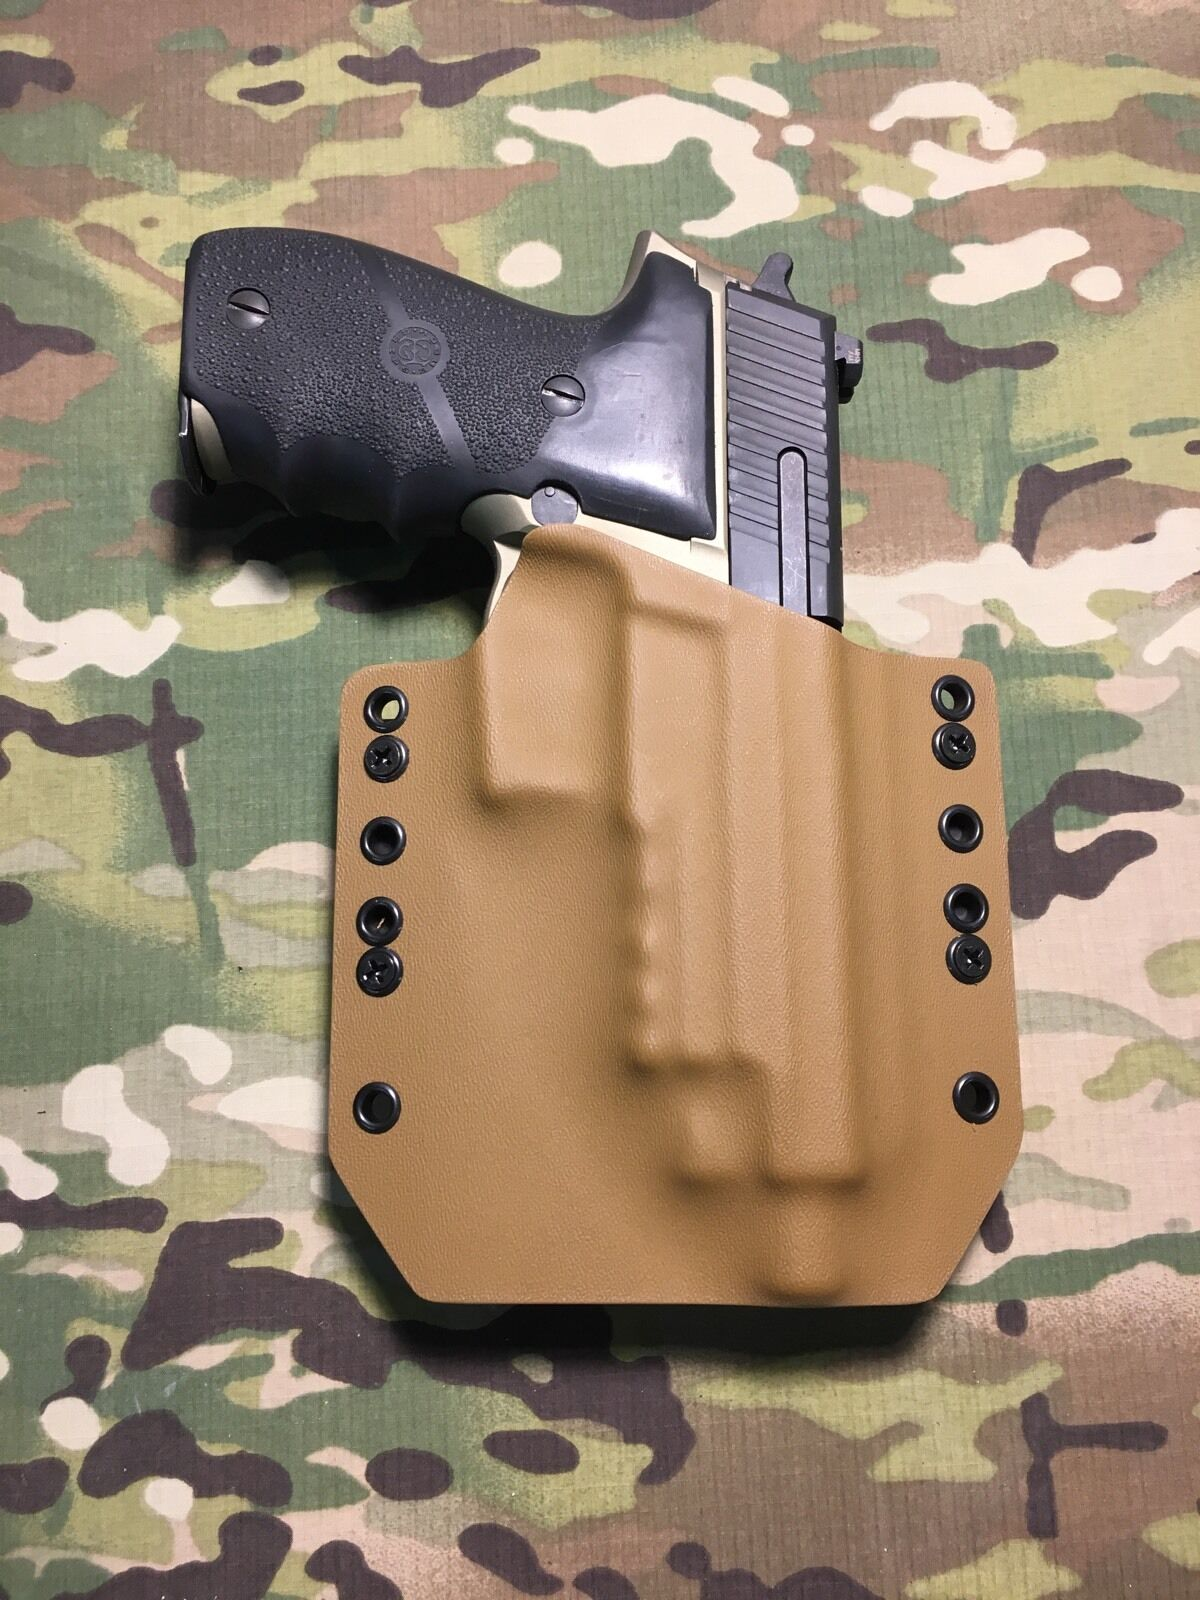 Coyote Coyote Coyote Tan Kydex SIG P226R Threaded Barrel Holster 39a9d8